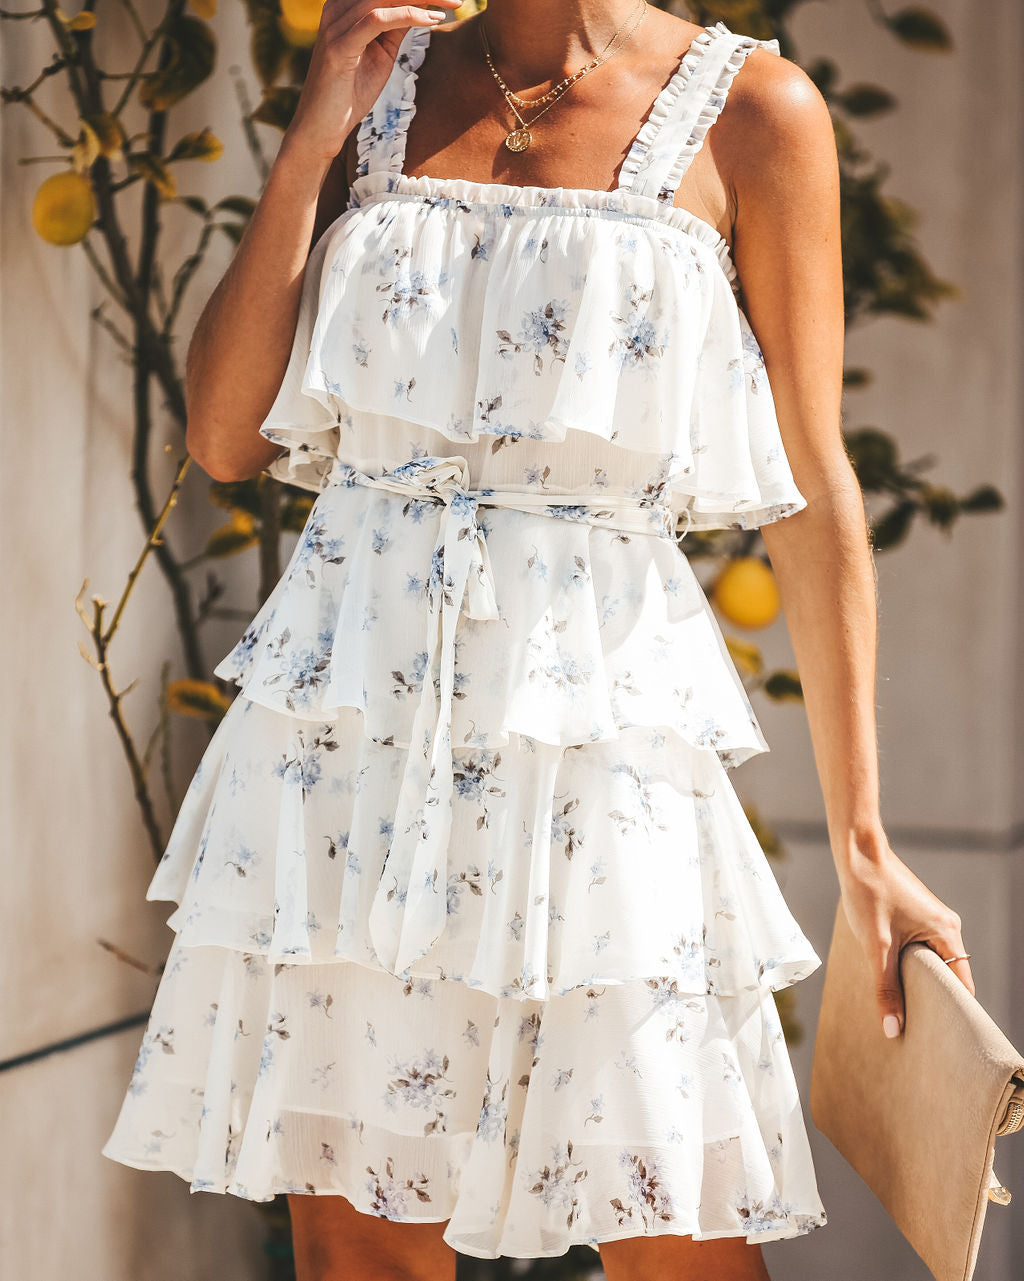 871f15a645c Detail Product. FILTER ← Home - DRESSES - Fantasia Floral Tiered ...